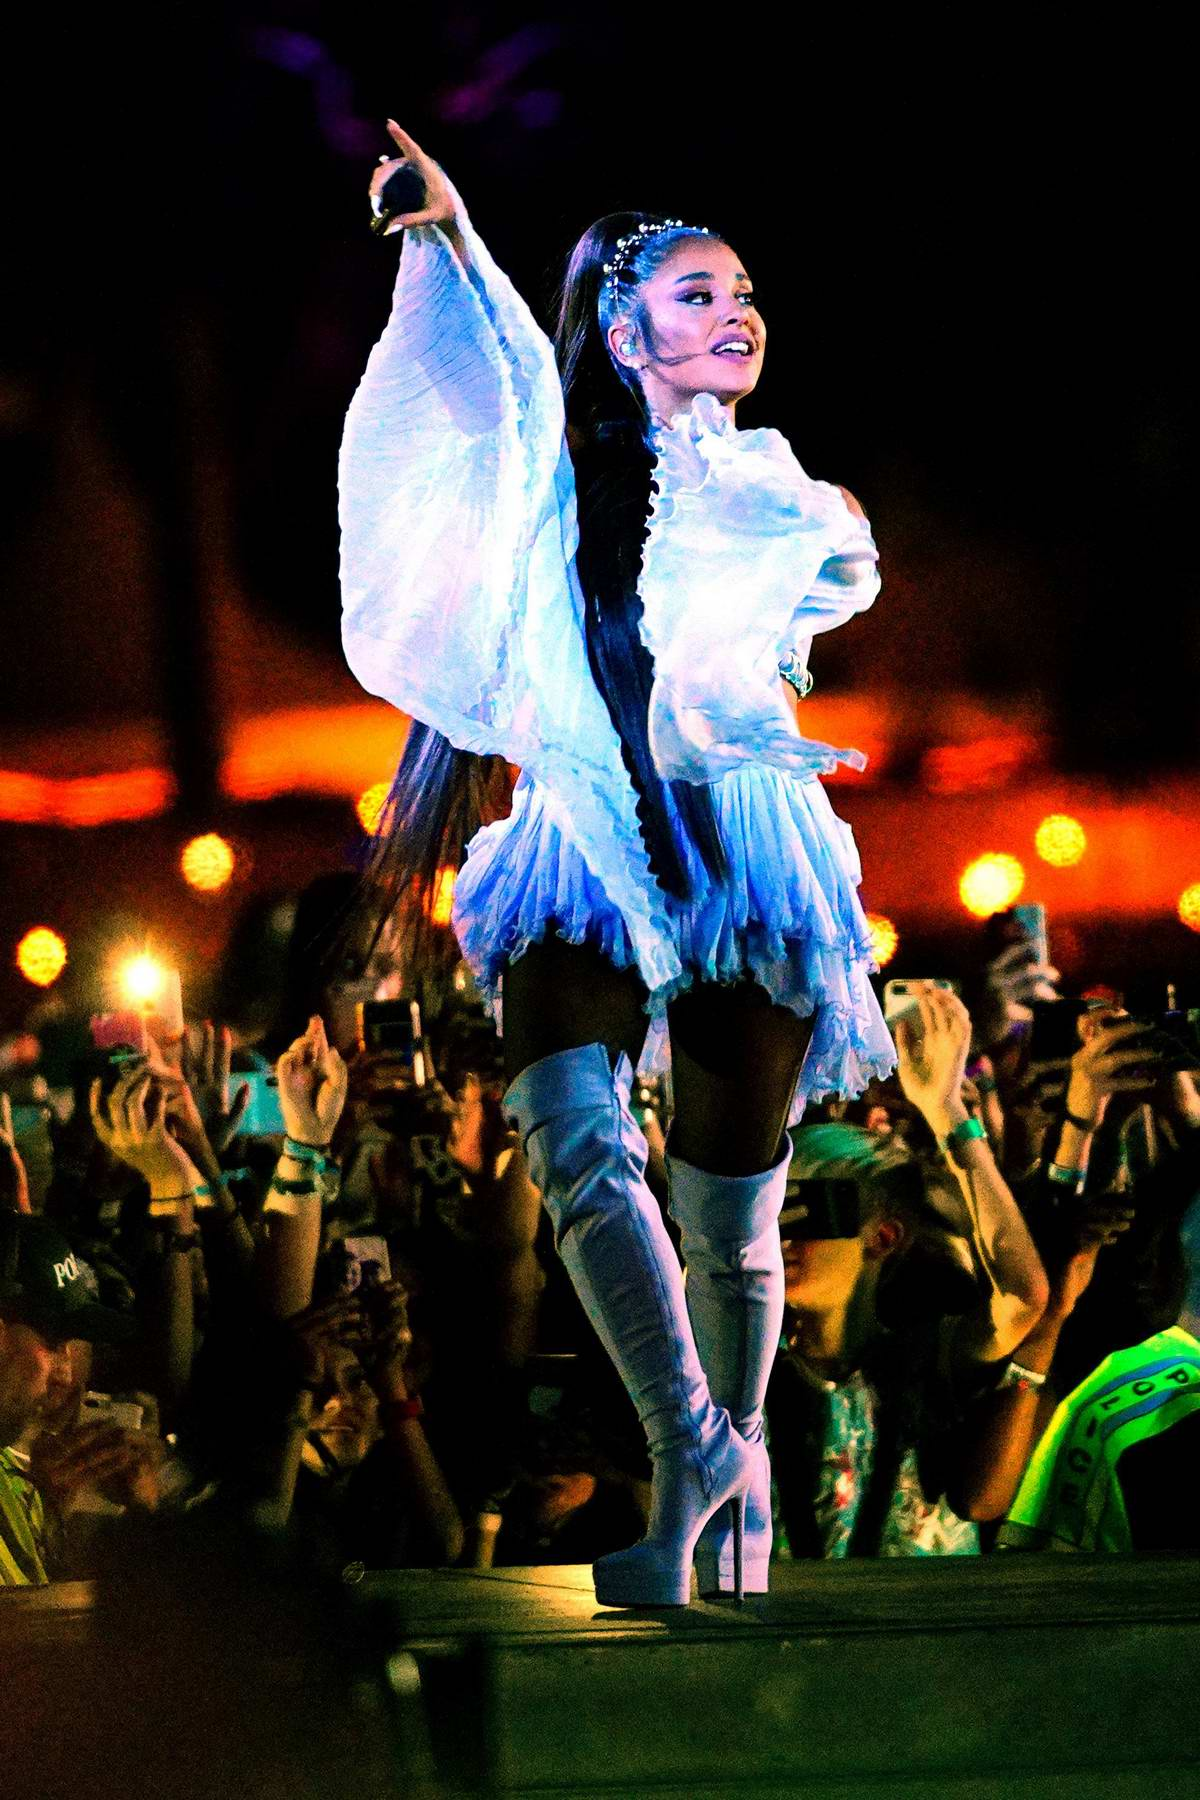 Ariana Grande performs onstage at Coachella Valley Music and Arts Festival in Indio, California